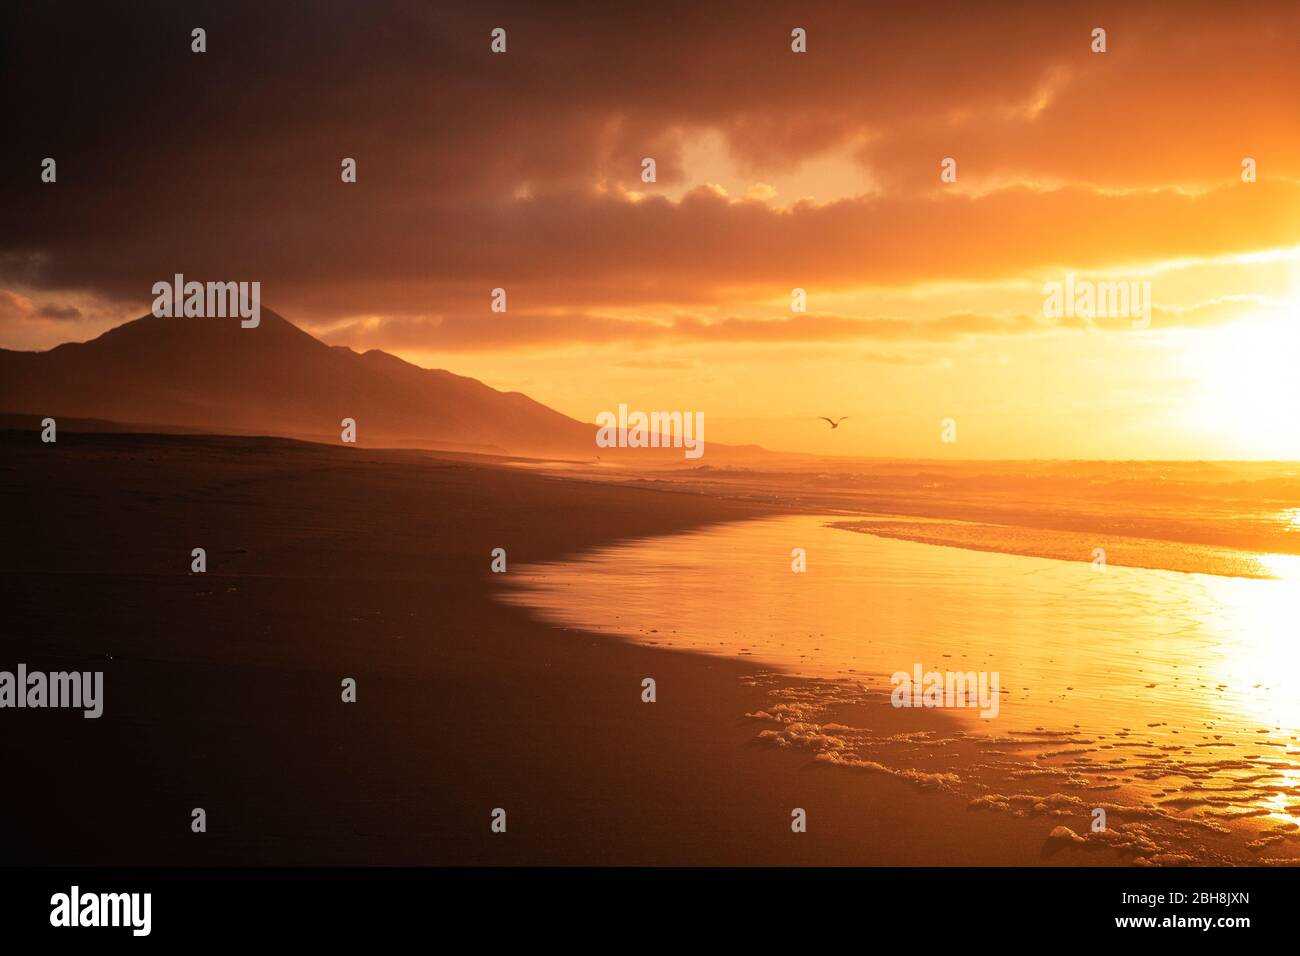 Golden beautiful red sunset at the beach with seagull flying for freedom and vacation concept - nobody in tropical wild scenic place with ocean and mountains - quiet and peace landscape on the summer holiday coasts Stock Photo